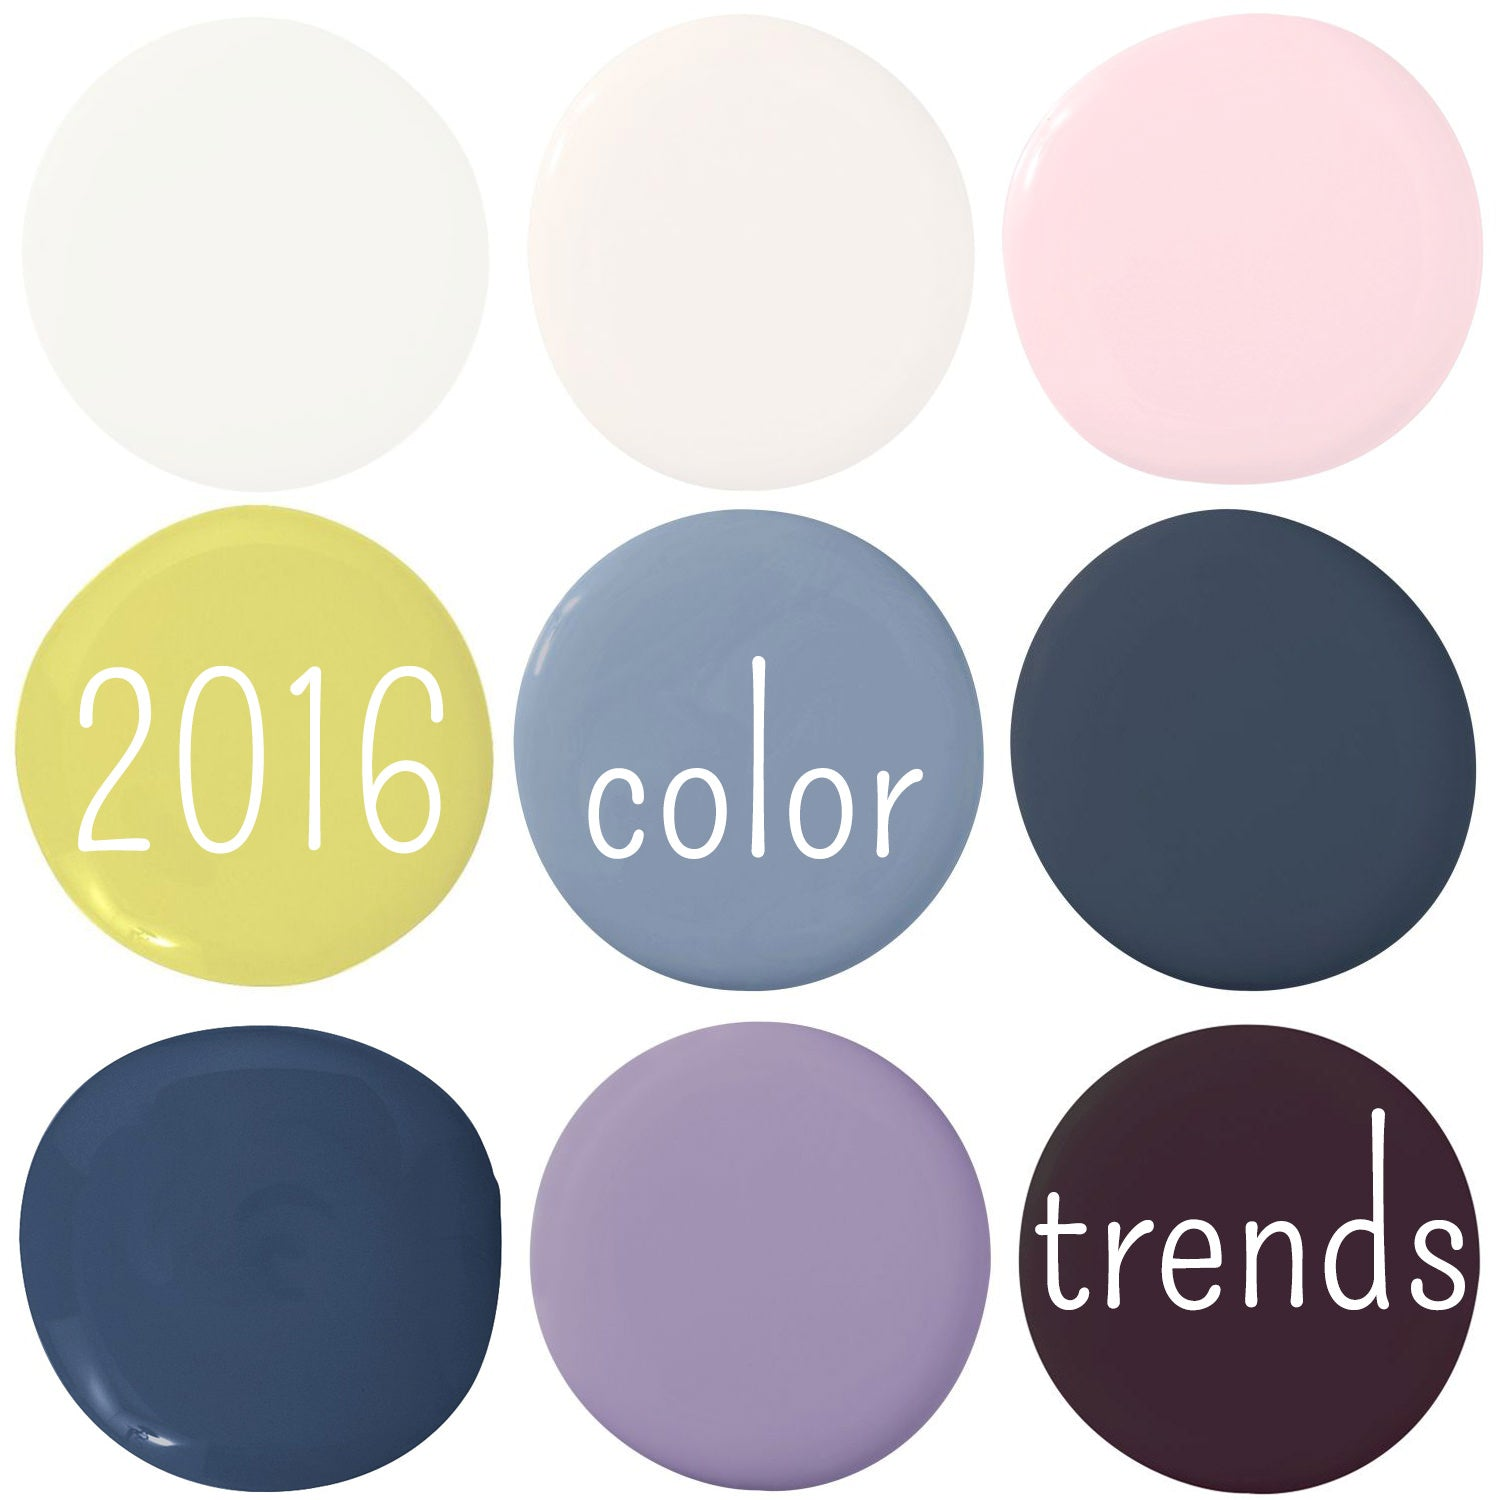 House Beautiful, 2016 Color Trends, Home Decor, Home Organizing, Organizational solutions